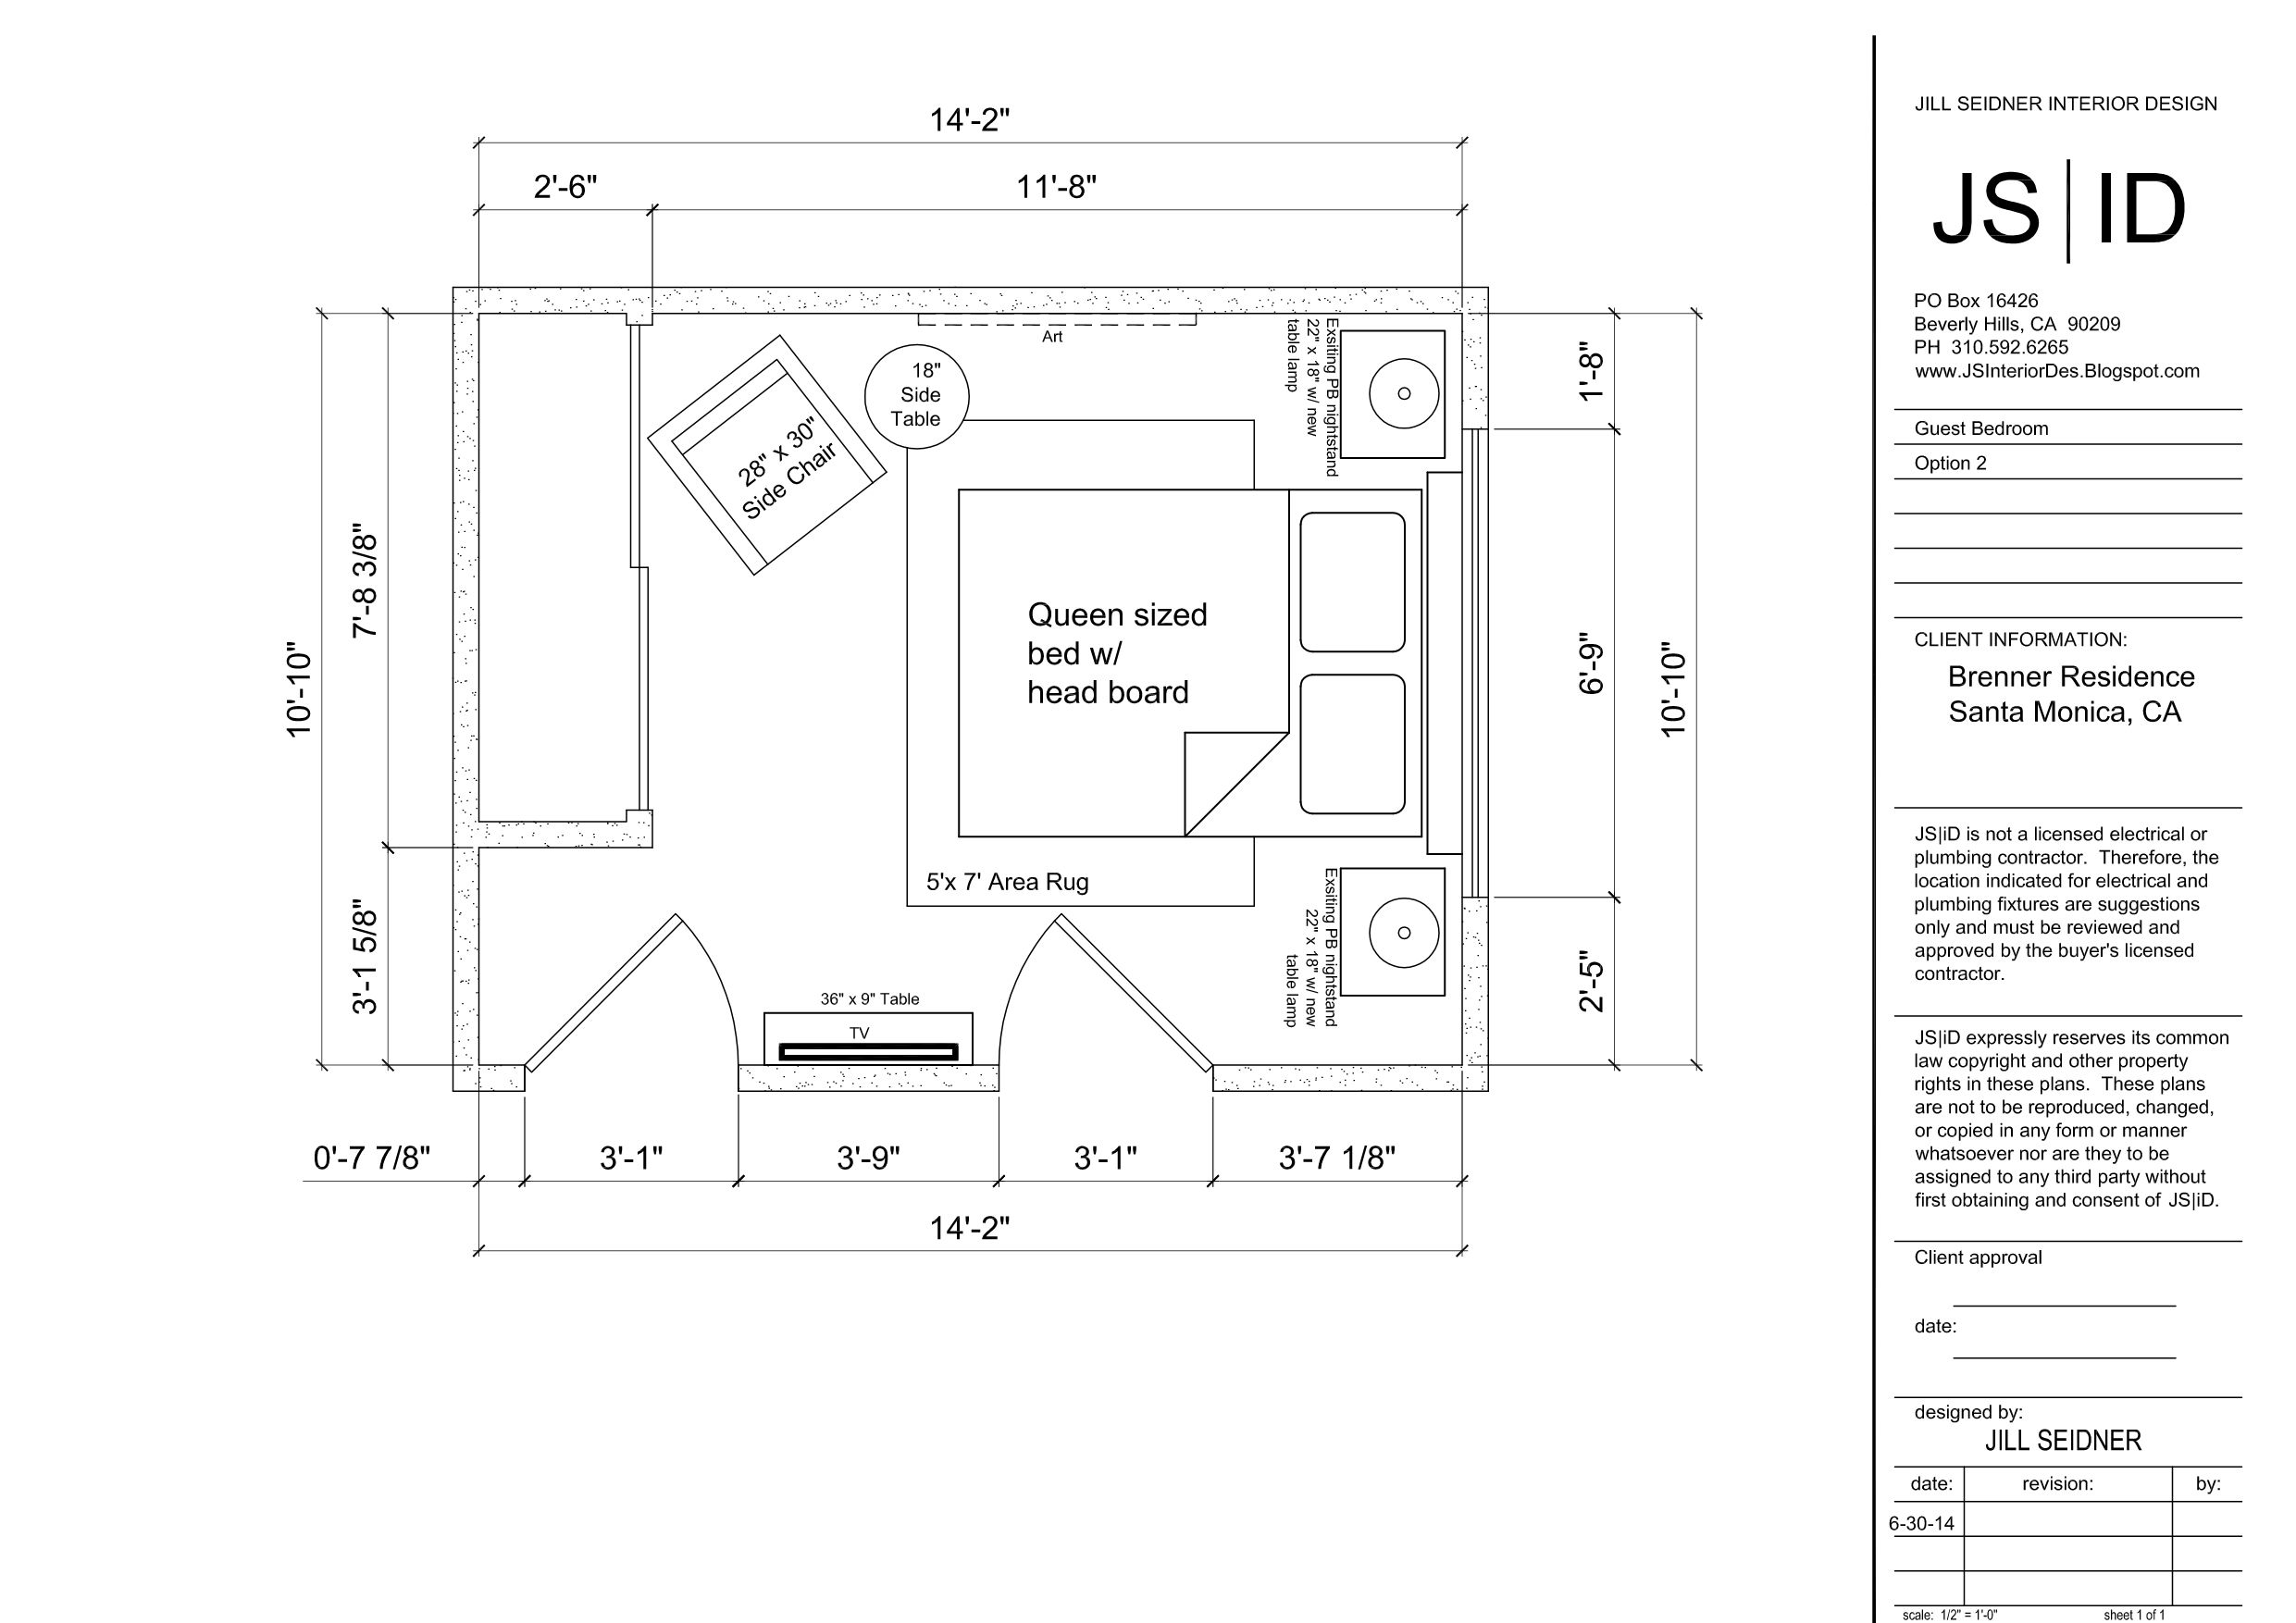 Santa Monica, CA Residence Guest Bedroom Furniture Floor Plan